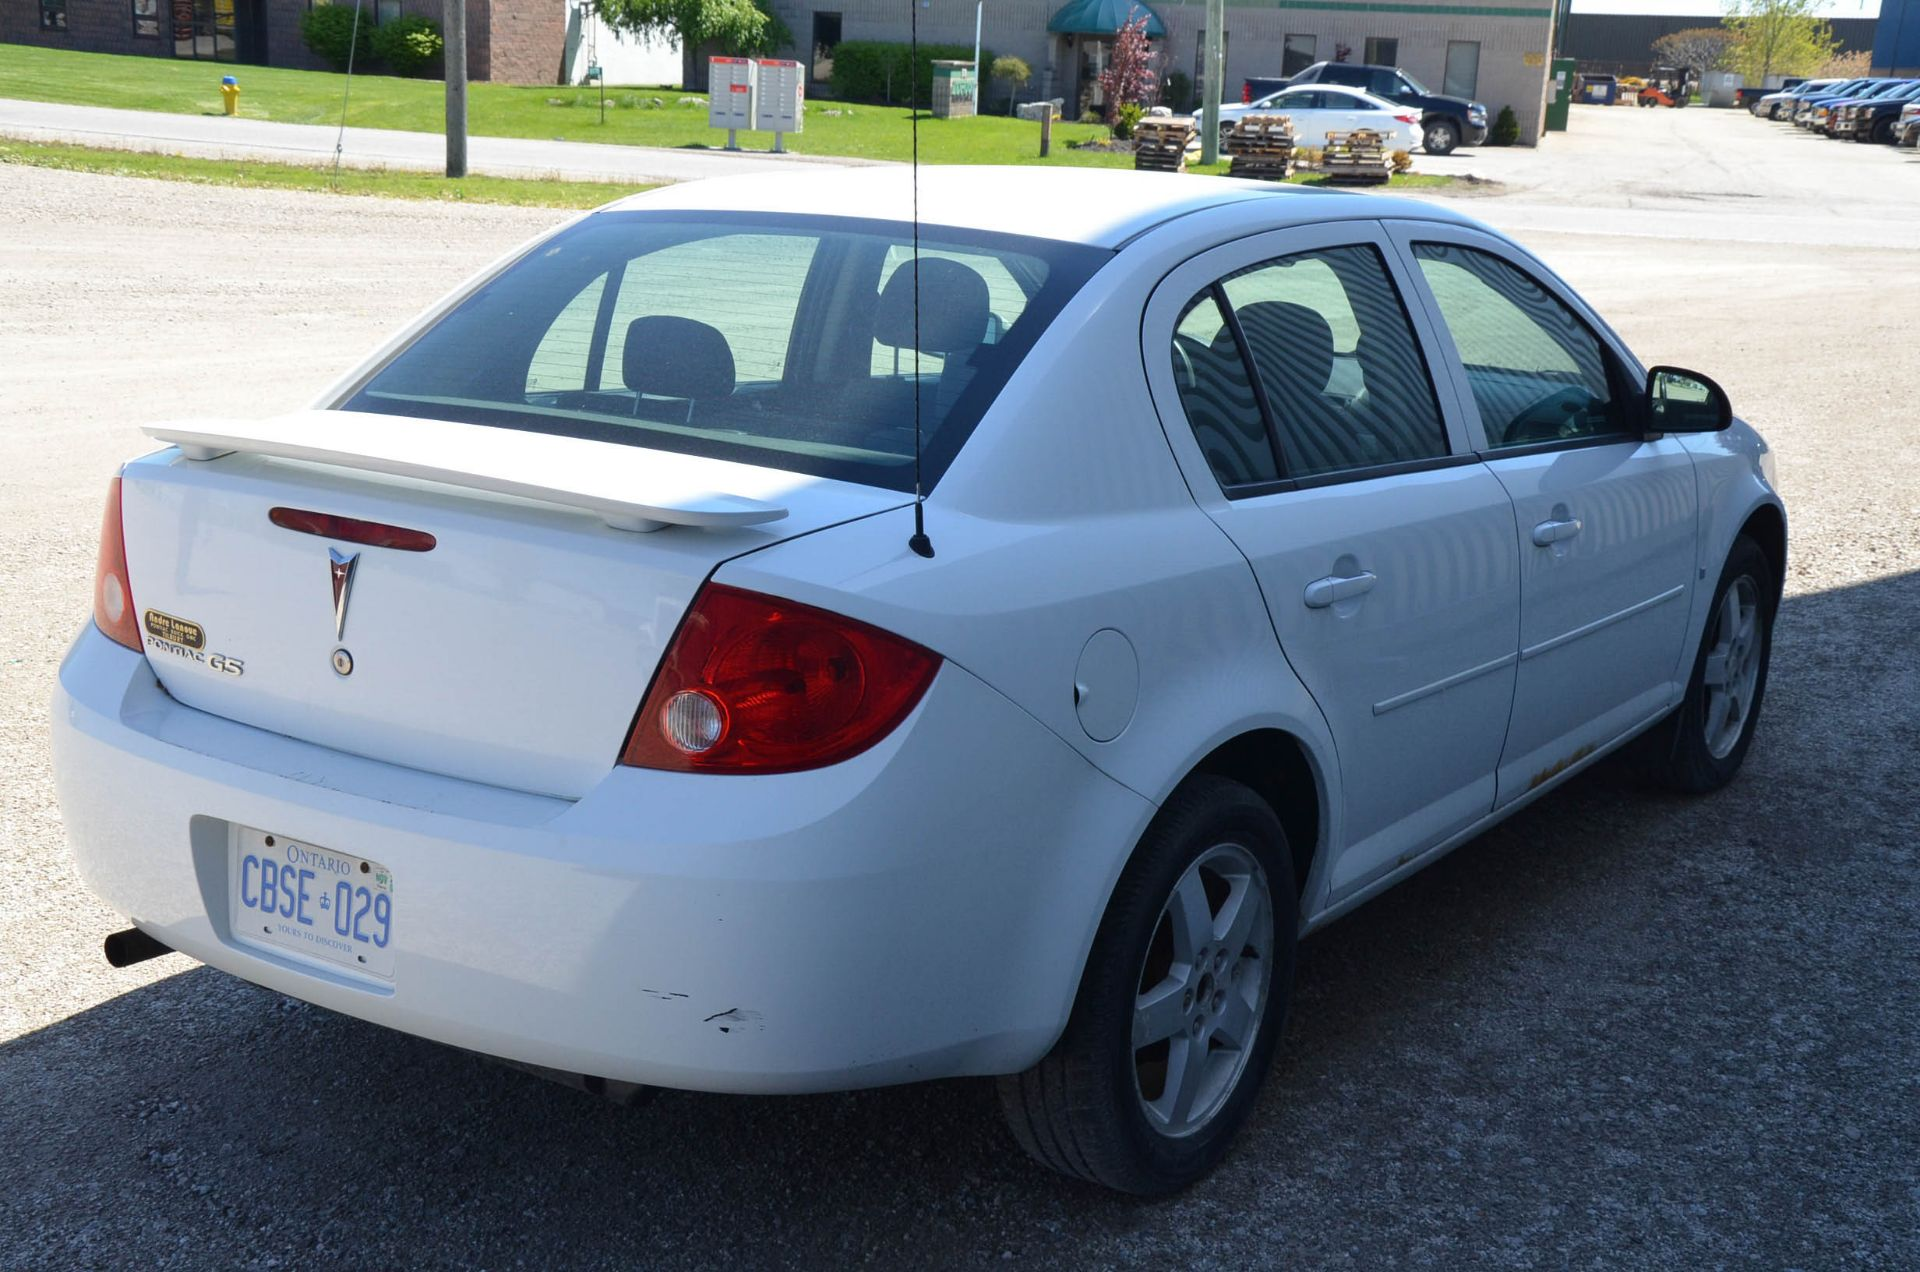 PONTIAC (2008) G5 4-DOOR SEDAN, AUTO, APPROX. 192,000 KM (RECORDED ON METER AT THE TIME OF LISTING), - Image 4 of 9